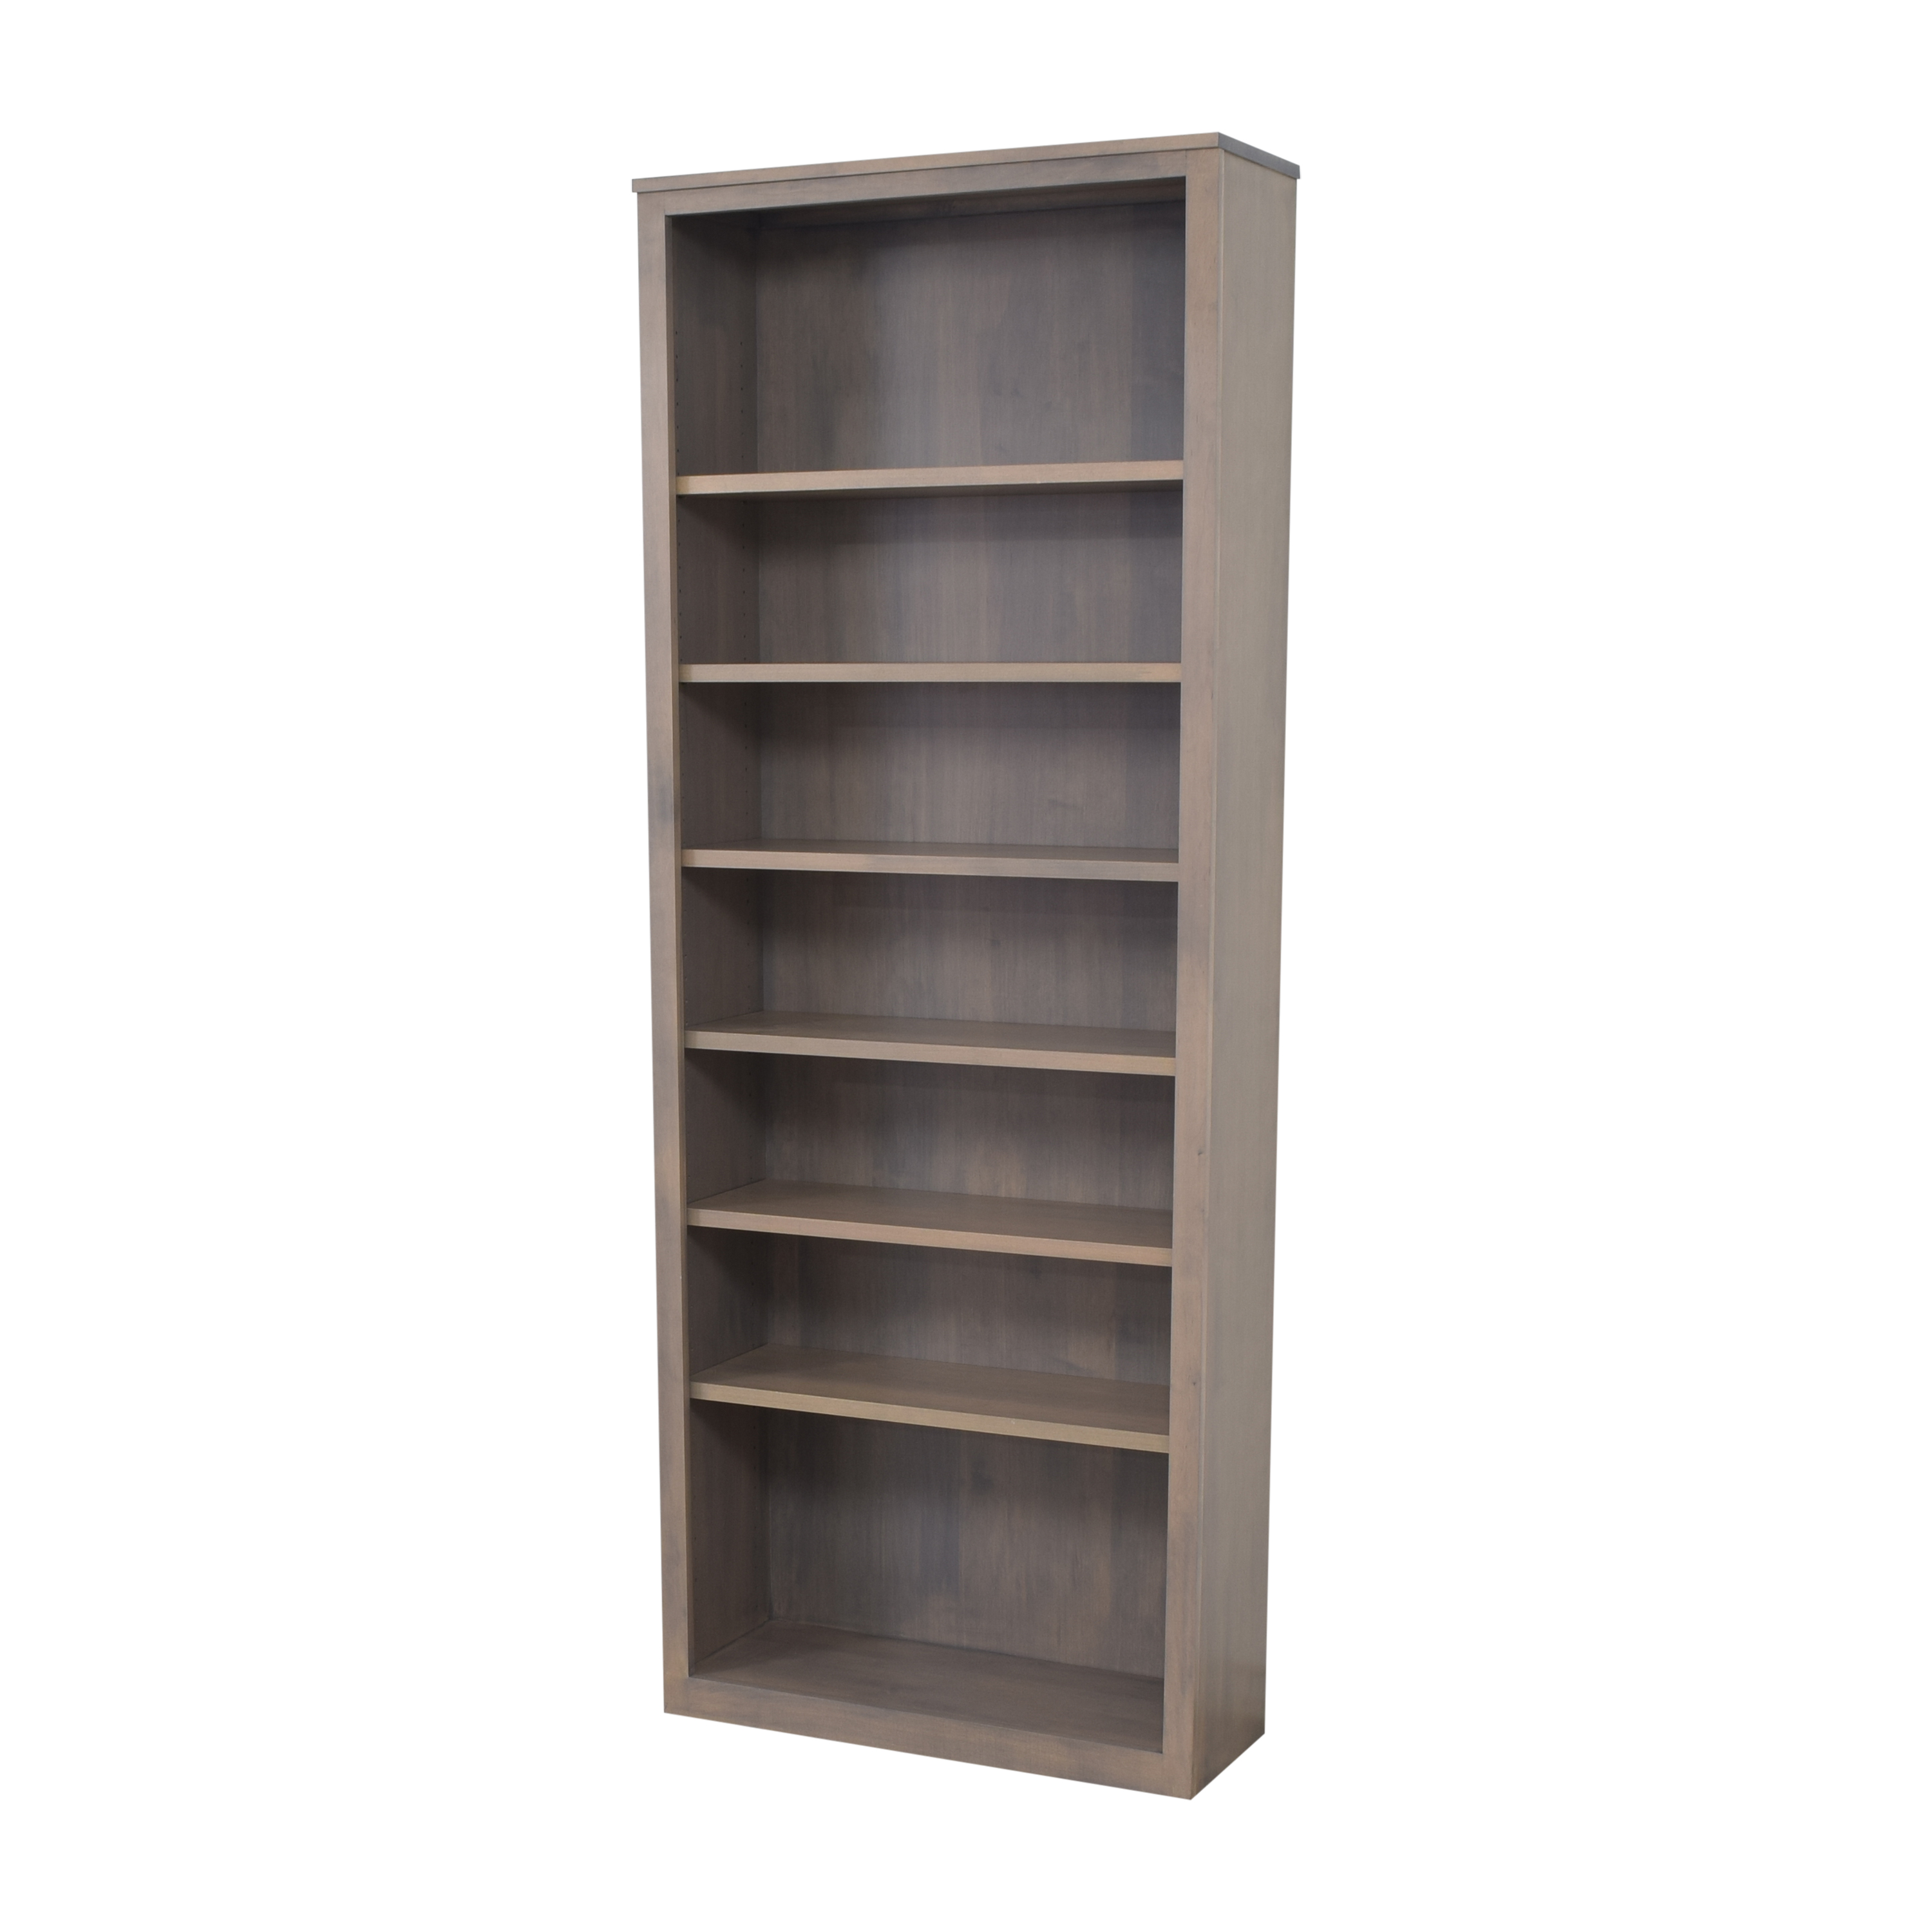 Room & Board Woodwind Bookcase / Bookcases & Shelving